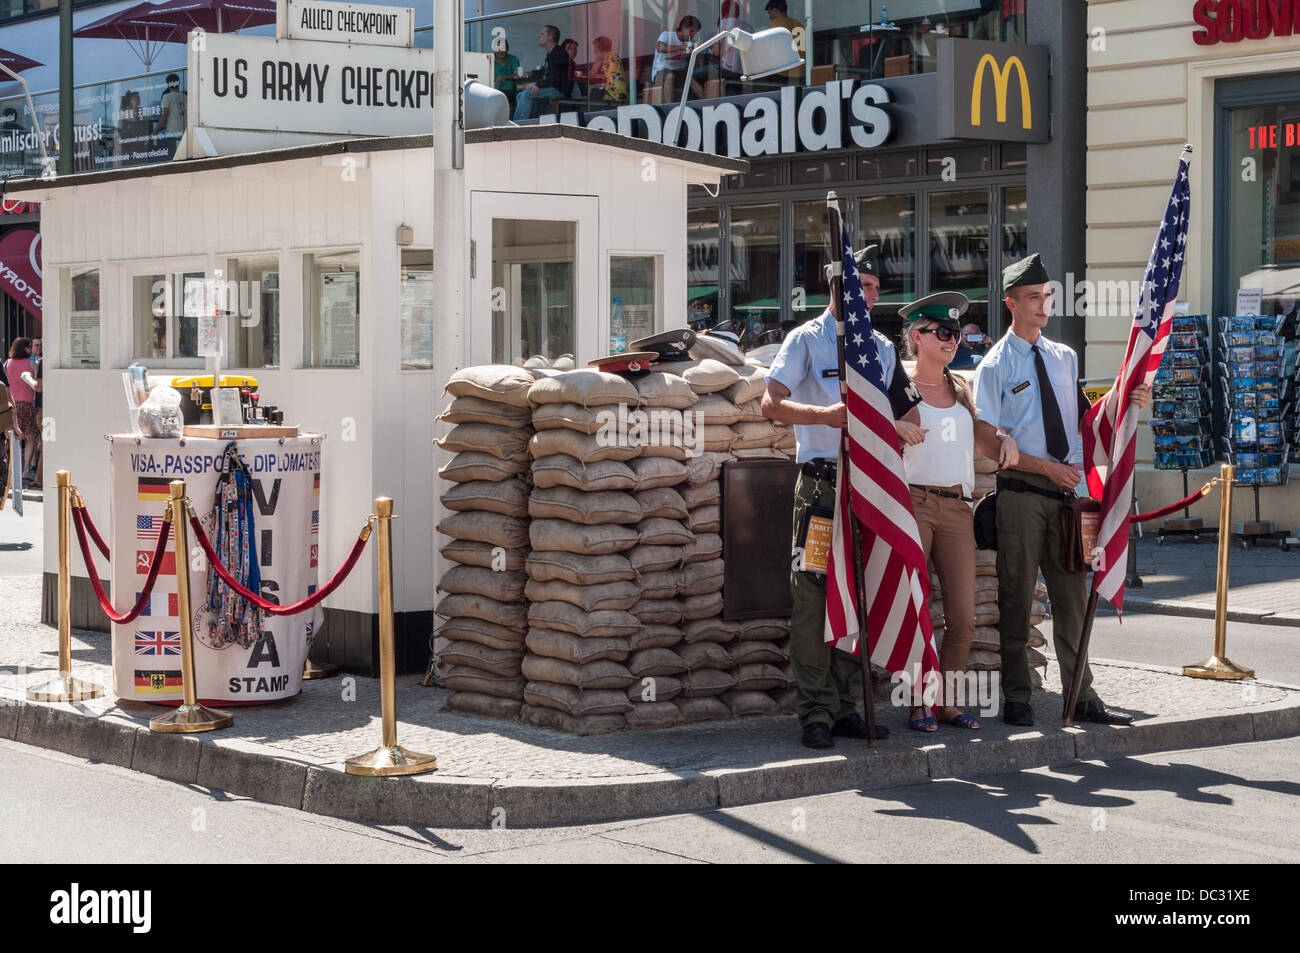 US Army Checkpoint Charlie – woman with visor cap and actors in American soldiers uniform posing - Berlin Germany Stock Photo